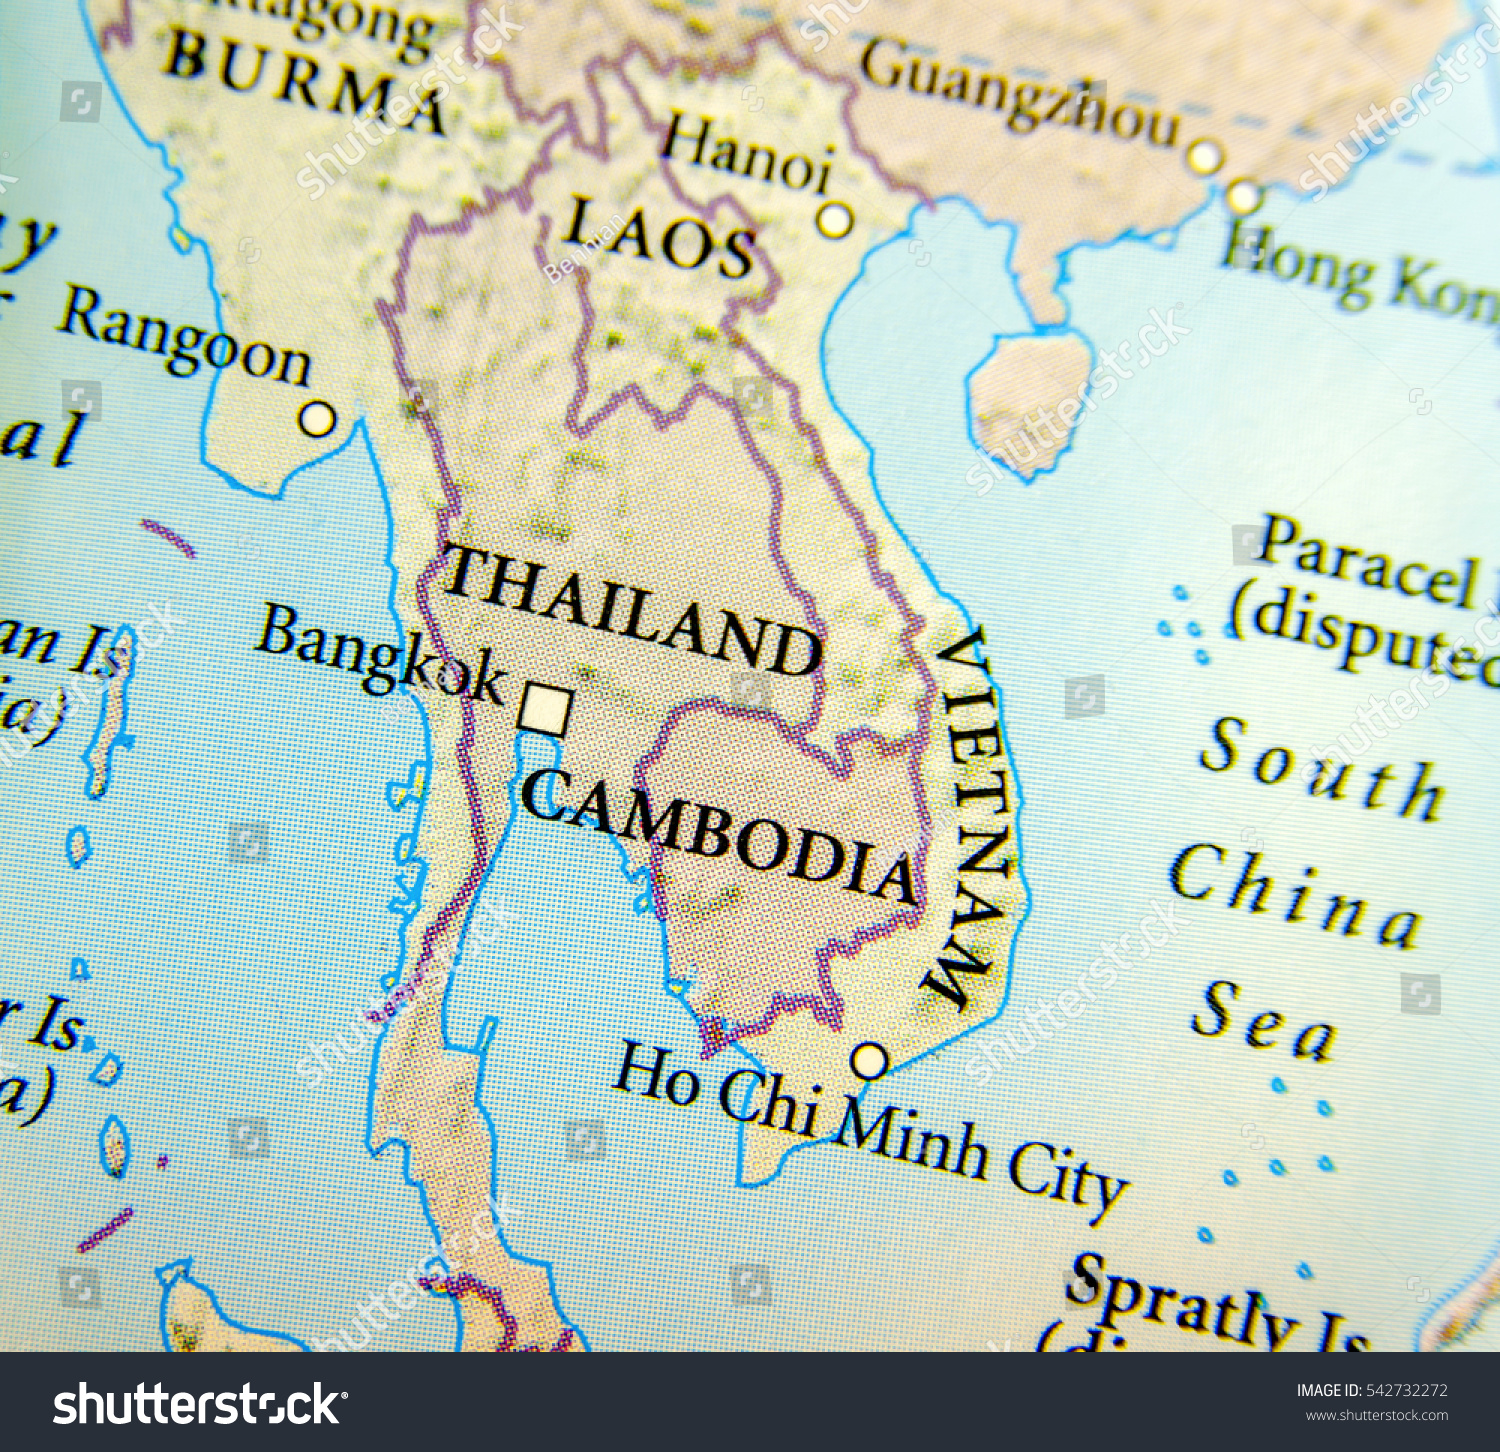 Map Of Burma With Cities Map Of S Africa With Cities Map Of - Map of burma